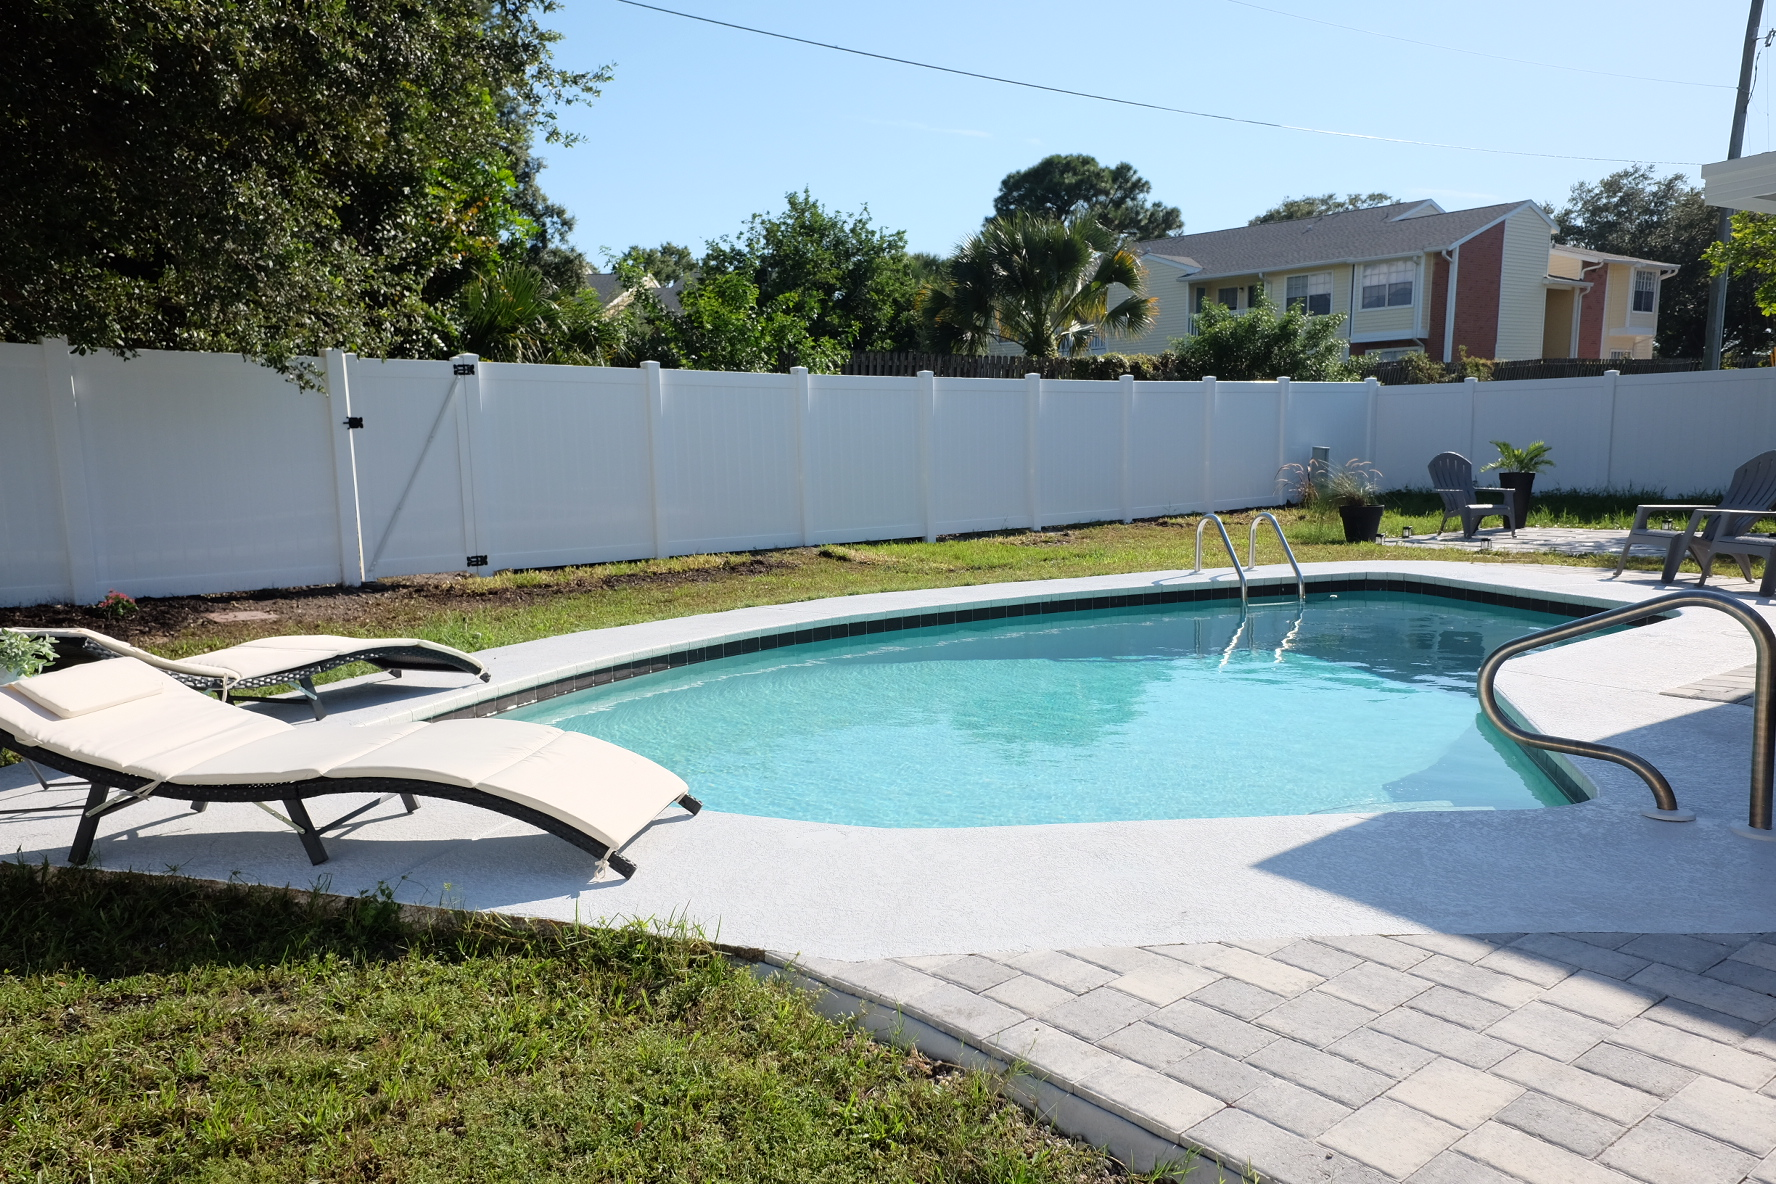 Pool Area:  Our Modern Coastal Cottage  Airbnb in Dunedin, FL